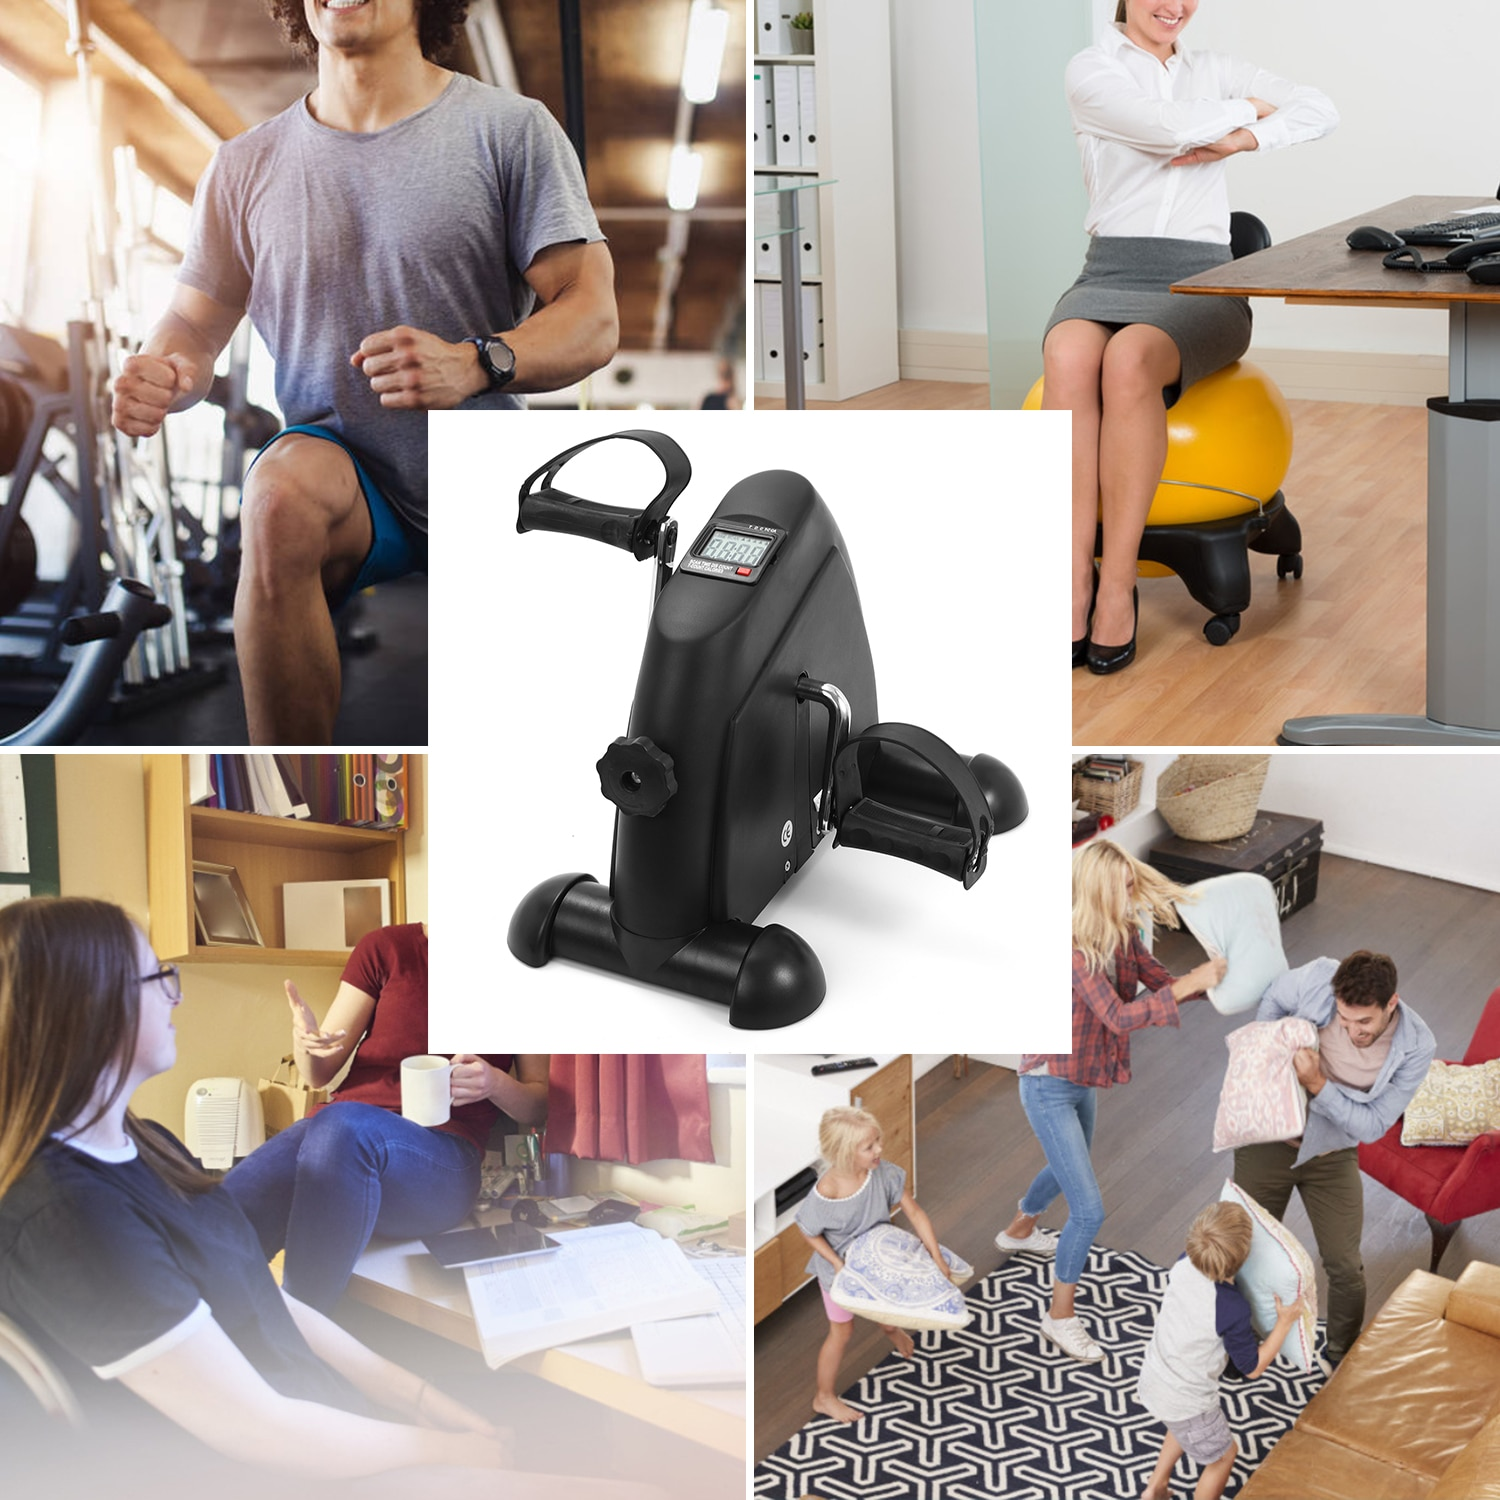 Mini Pedal Stepper Exercise Machine LCD Display Indoor Cycling Bike Stepper with Adjustable Resistance For Home Office Gym